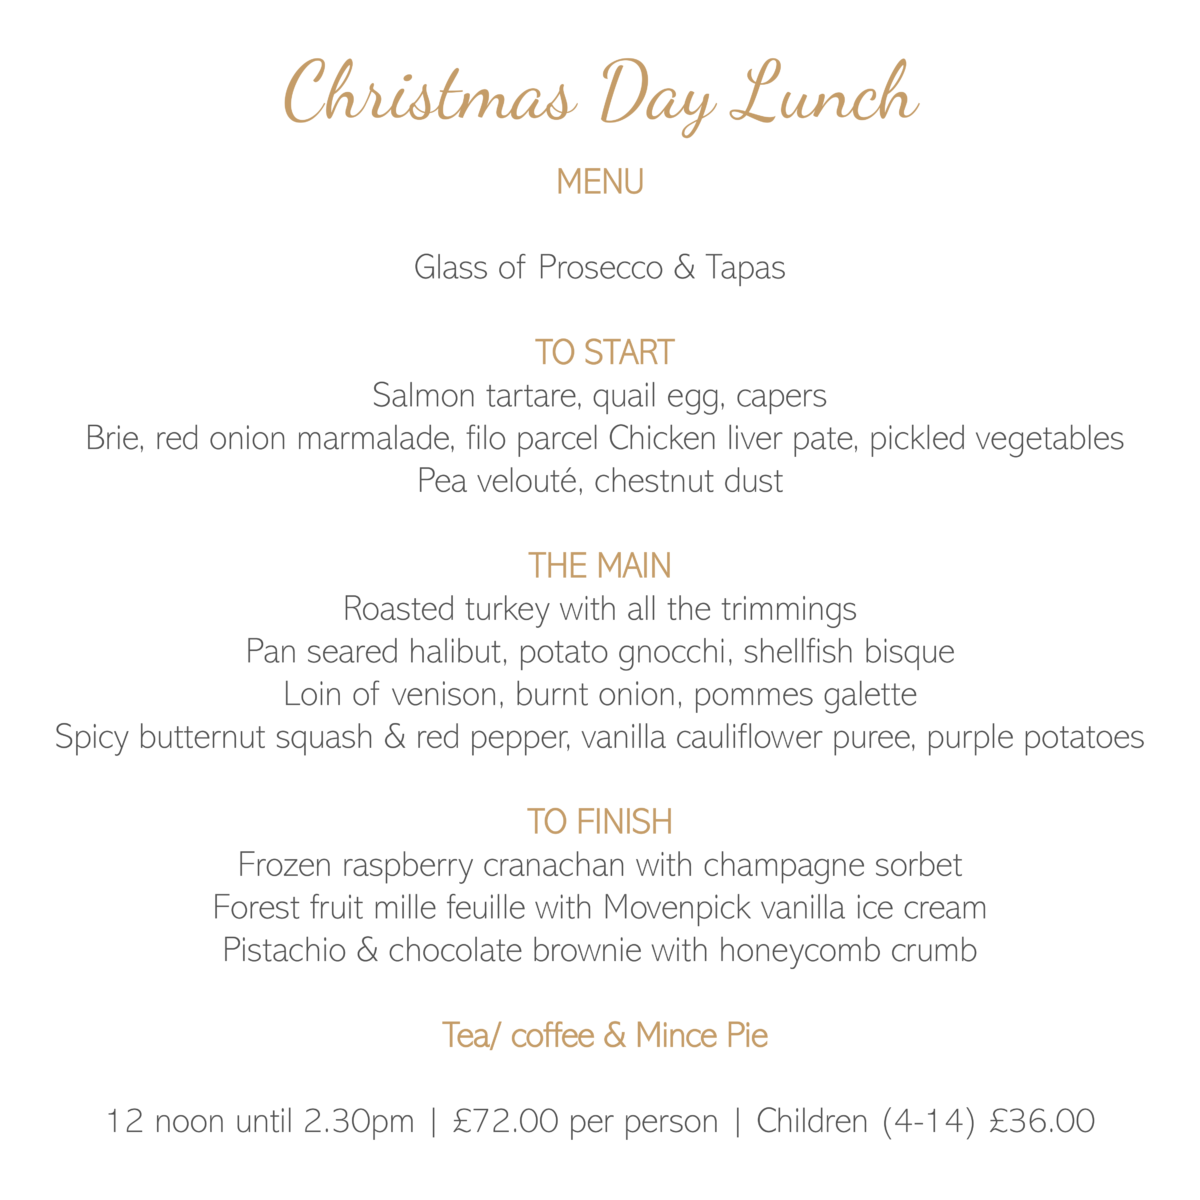 Christmas Day 2019.Christmas Day Lunch Menu 2019 Friars Carse Hotel